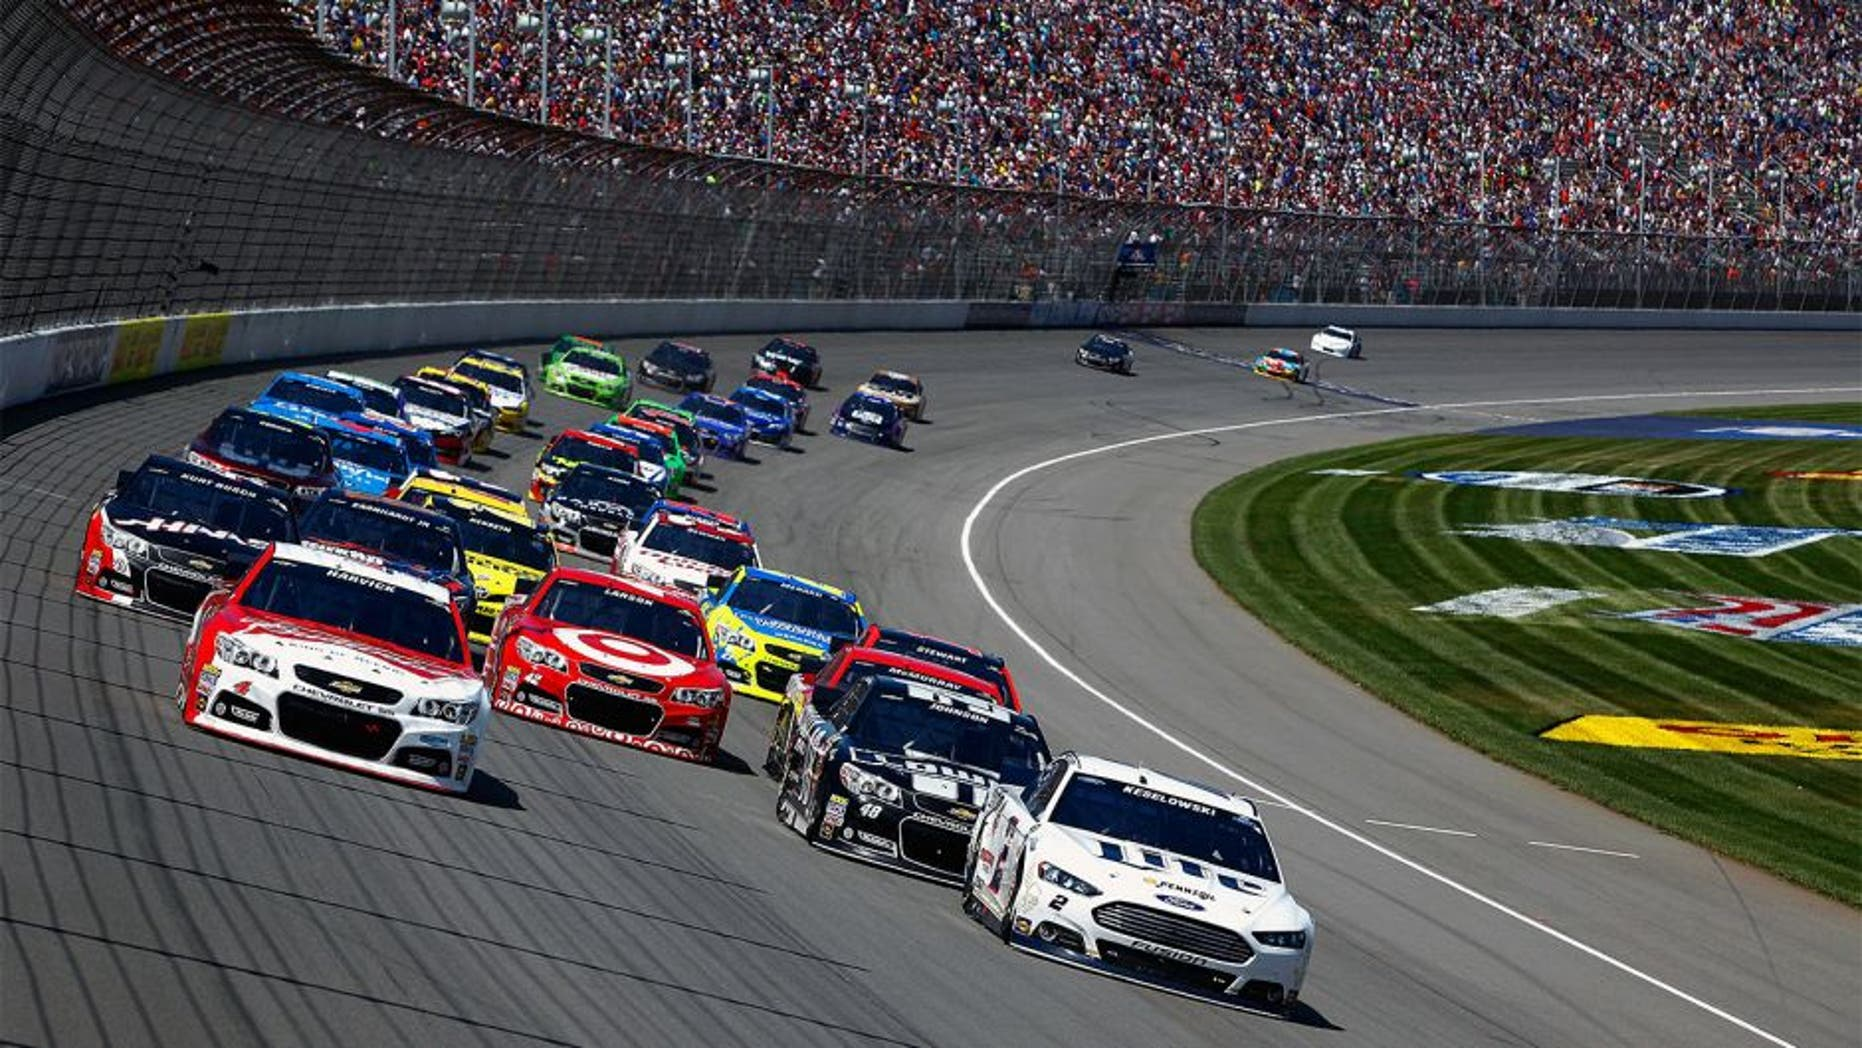 BROOKLYN, MI - JUNE 15: Kevin Harvick, driver of the #4 Budweiser Chevrolet, and Brad Keselowski, driver of the #2 Miller Lite Ford, lead the field on a restart during the NASCAR Sprint Cup Series Quicken Loans 400 at Michigan International Speedway on June 15, 2014 in Brooklyn, Michigan. (Photo by Brian Lawdermilk/NASCAR via Getty Images)